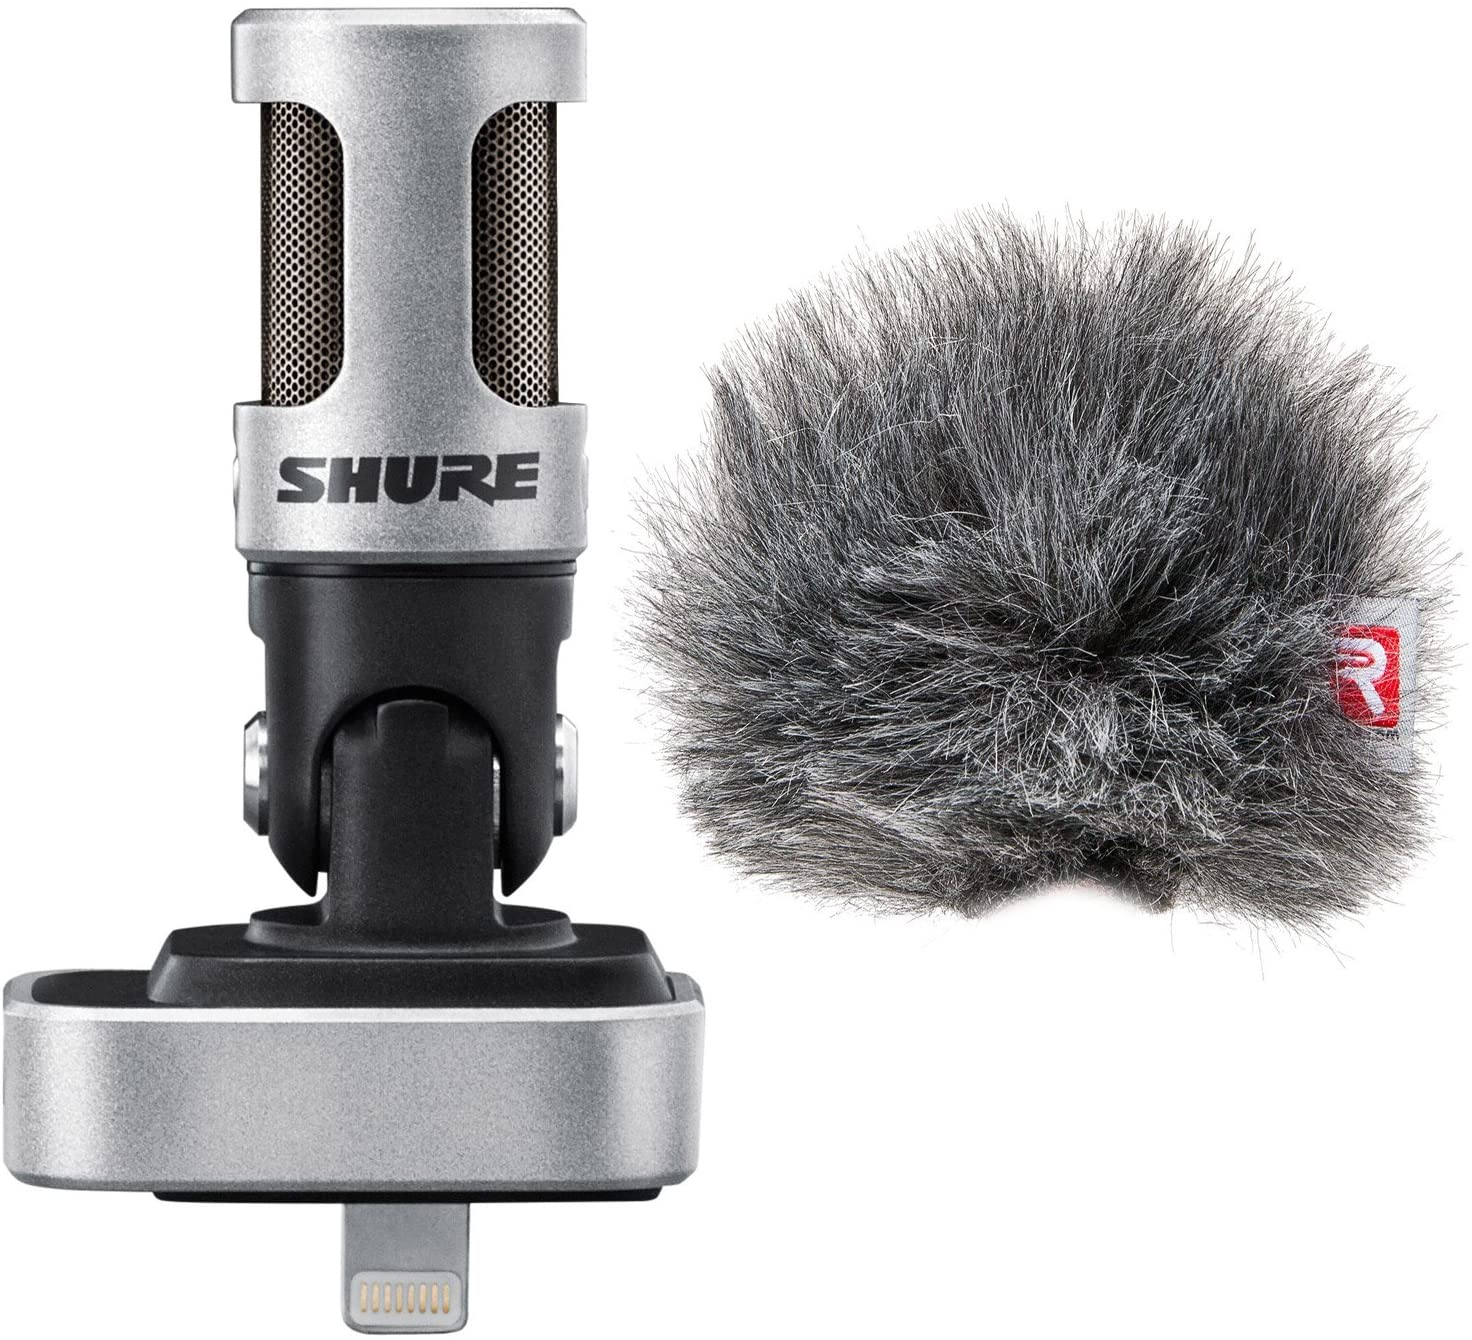 Shure MOTIV MV88 Digital Stereo Condenser Microphone for iOS Devices - With Shure Rycote Windjammer